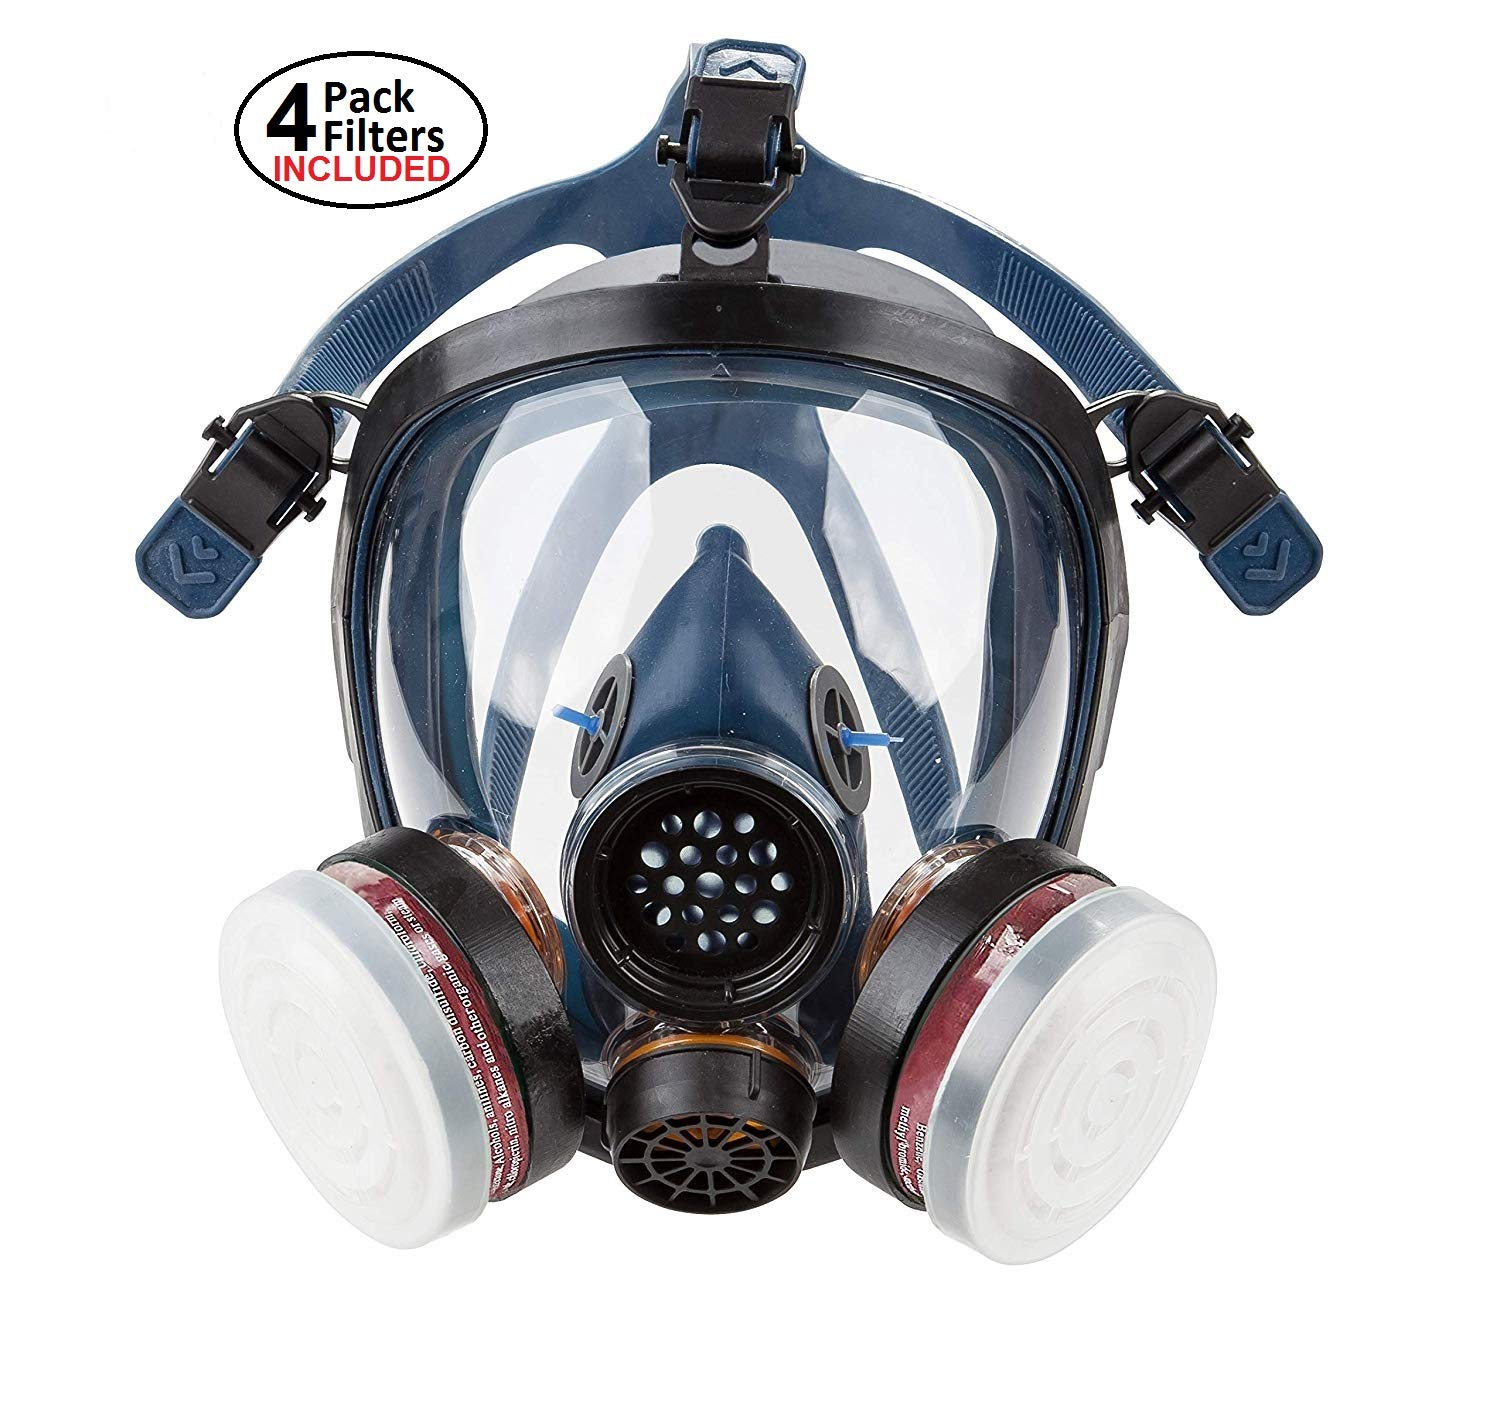 Full Face Organic Vapor Respirator - Safety Mask - Double N95 Activated Charcoal Air filter - for Construction, Cleaning and Industrial Work - Protective Shield from Chemicals, Mold and Dust by Safe Breath